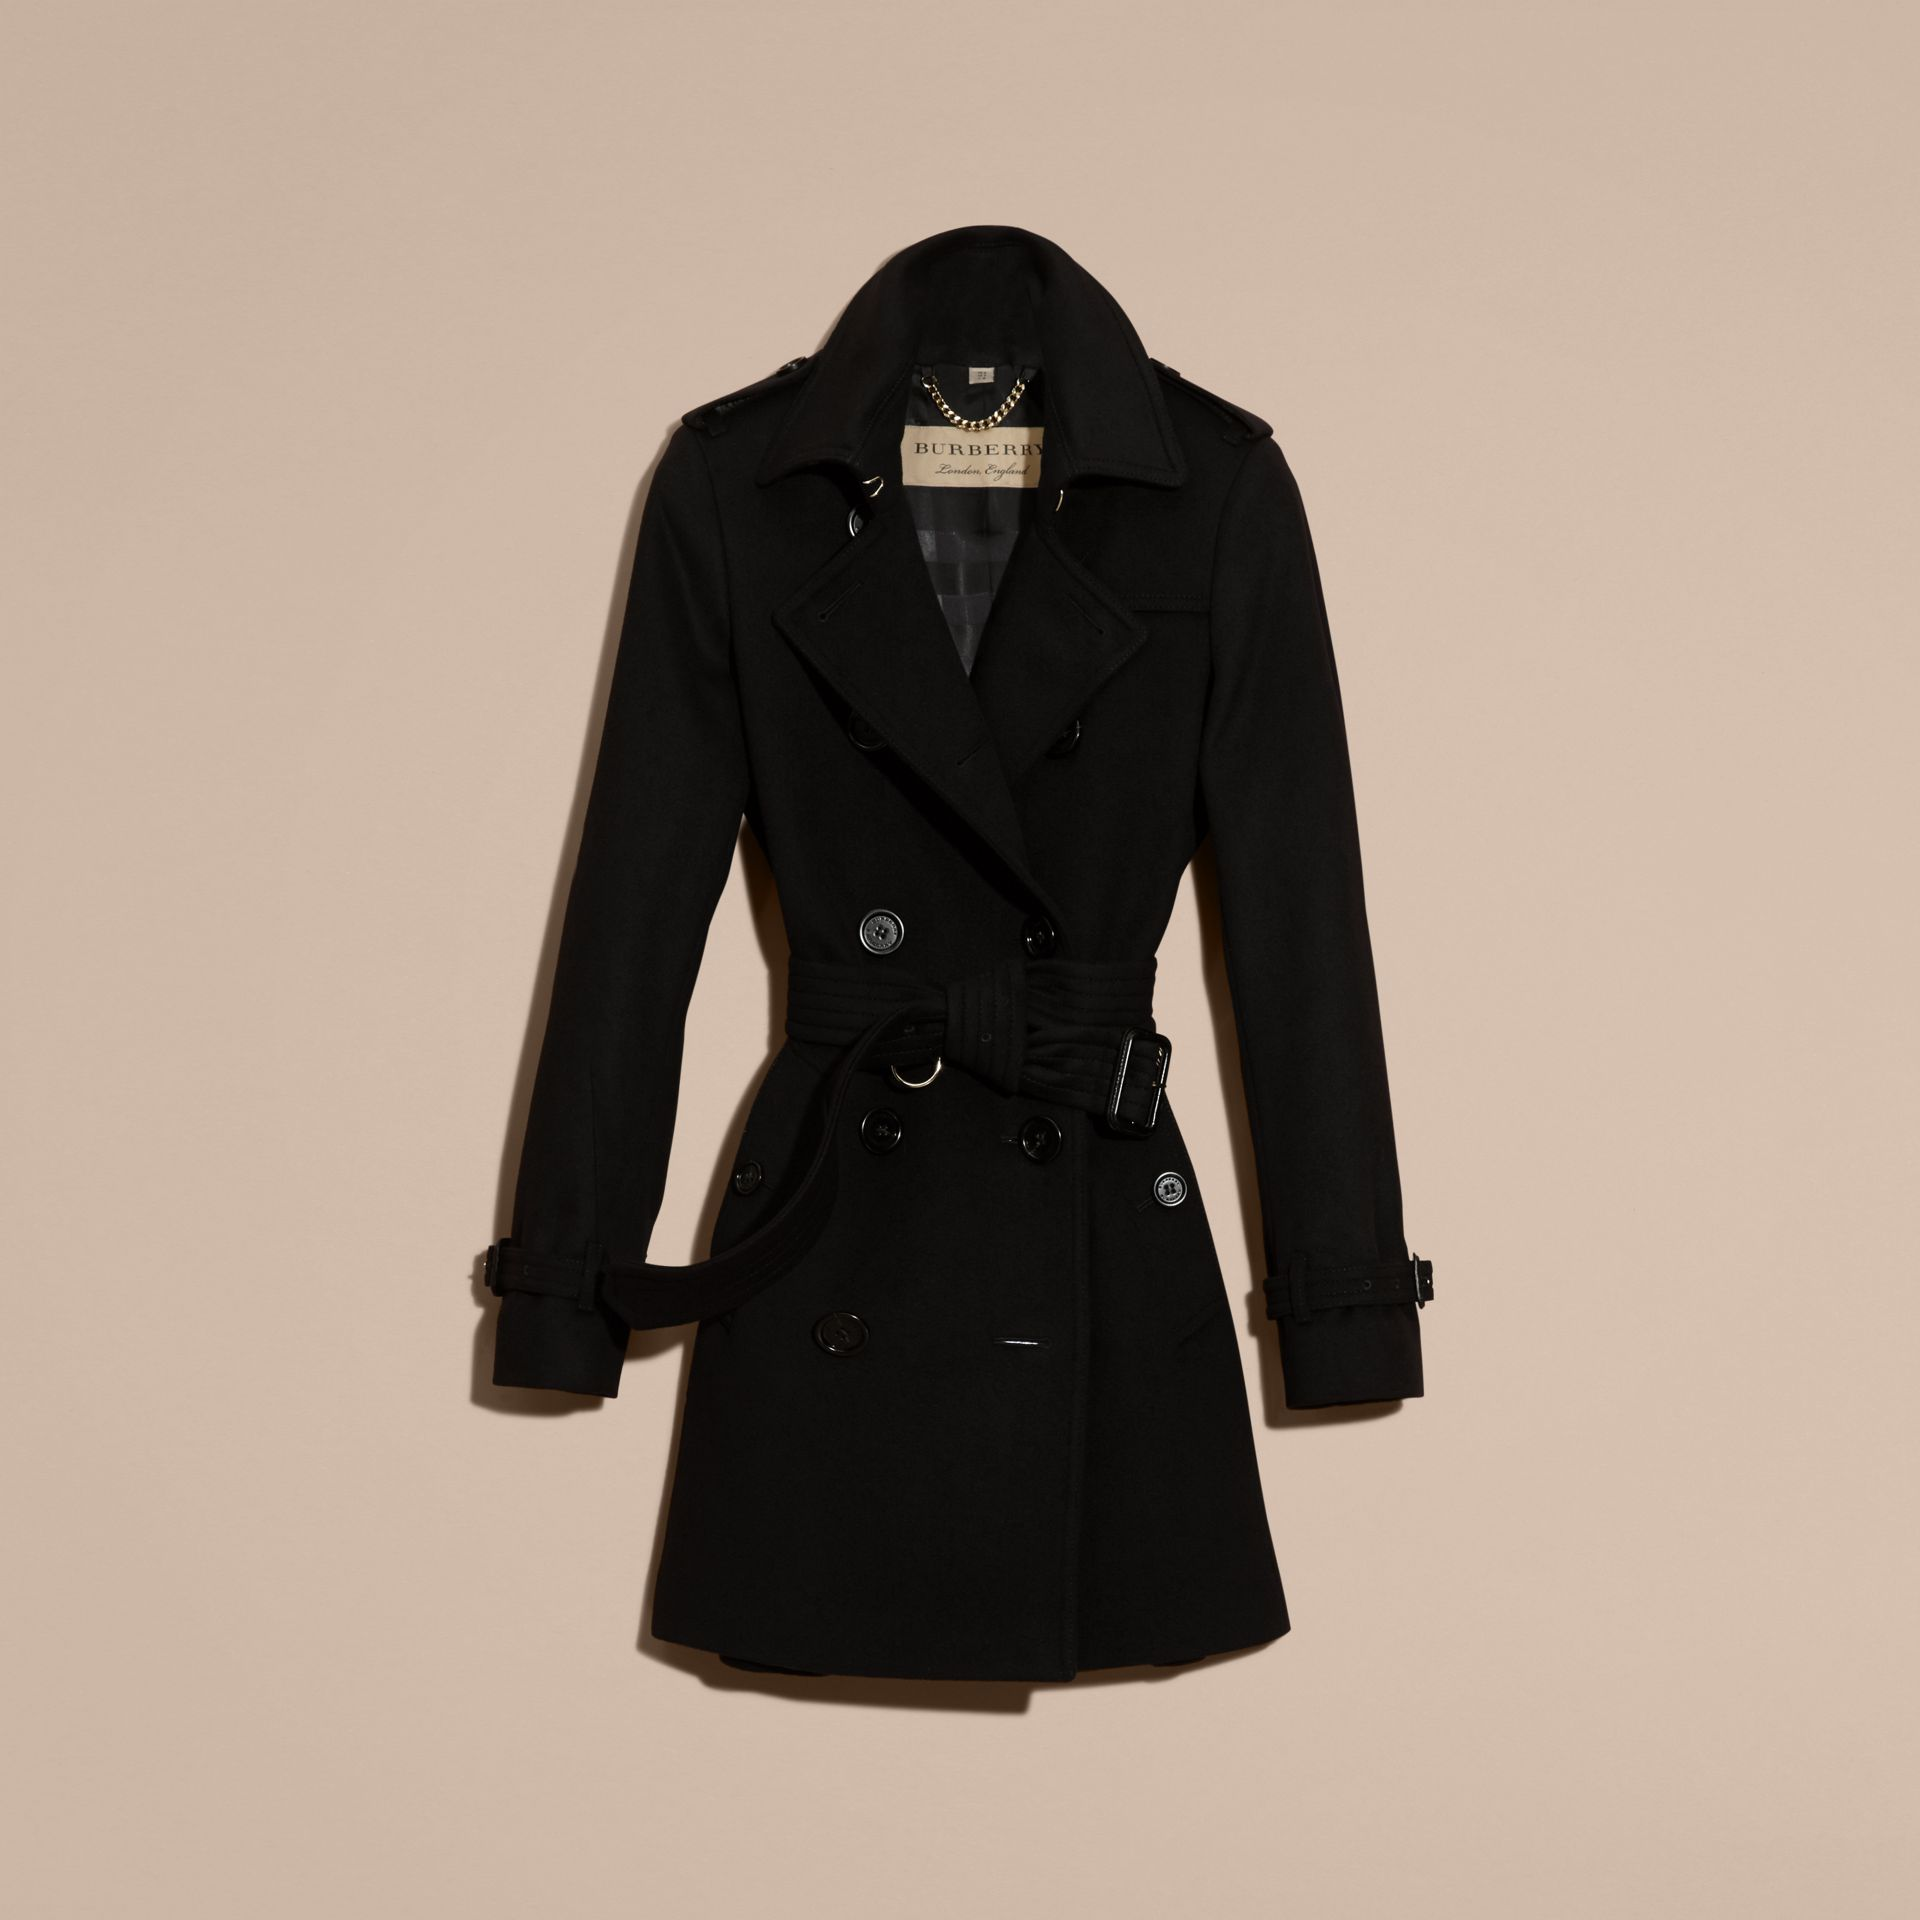 Wool Cashmere Trench Coat in Black - Women | Burberry - gallery image 4